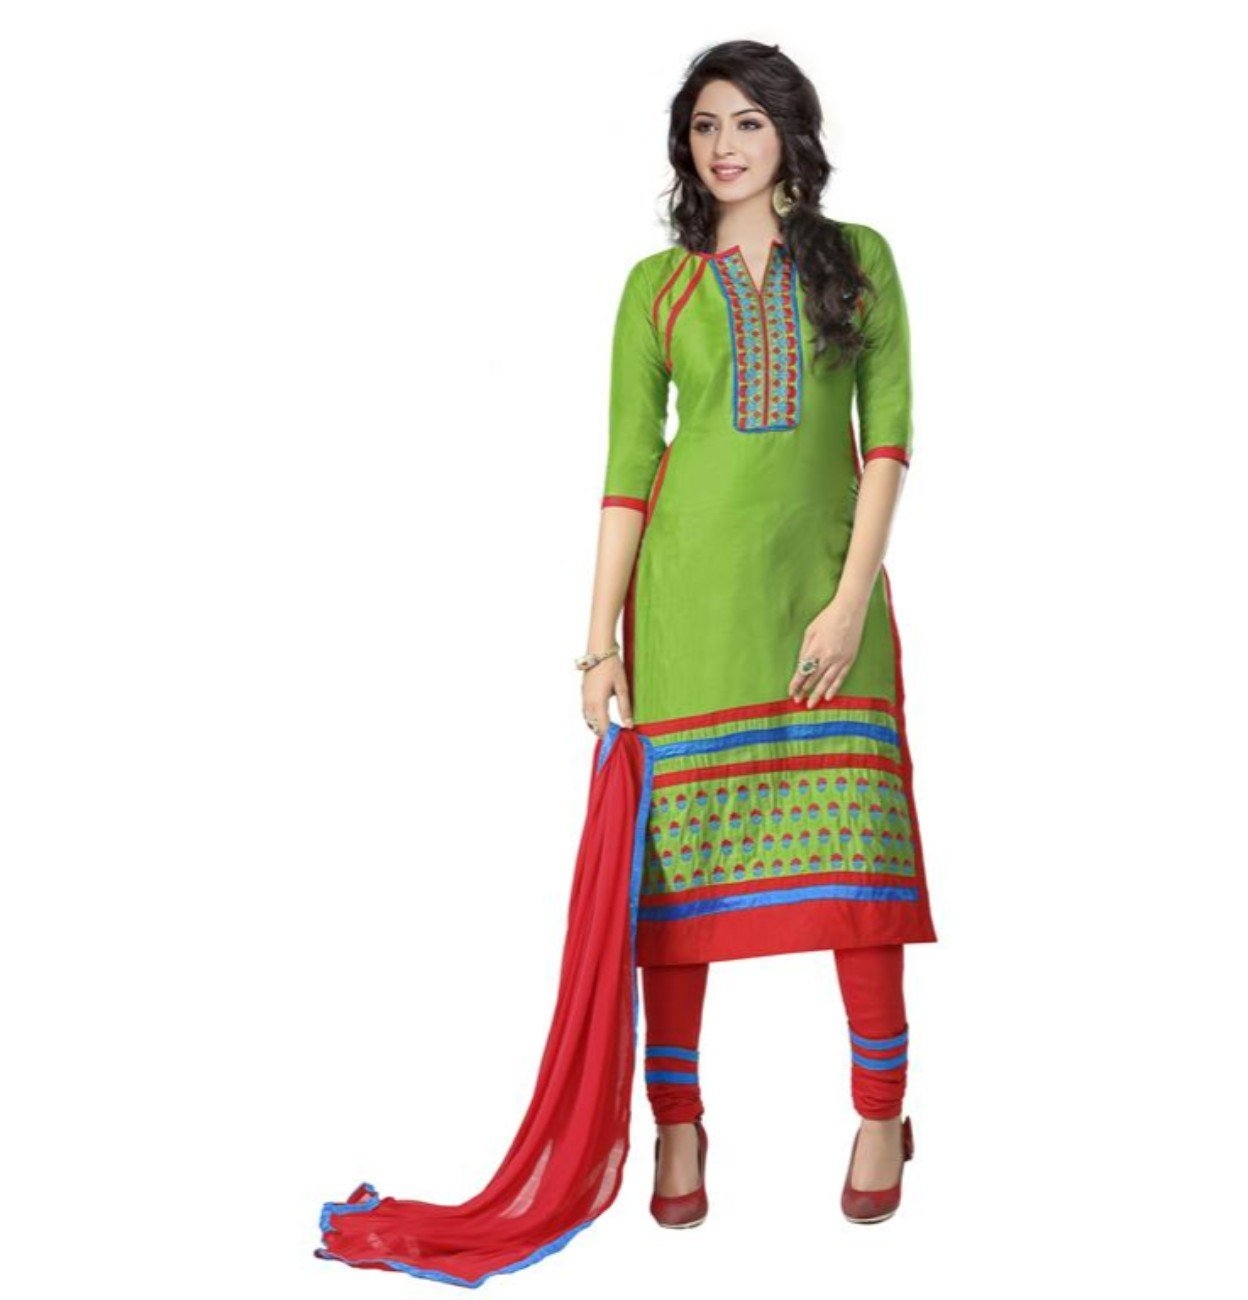 CRAZYBACHAT Indian Ethnic Pure Glass Cotton Designer Green Color Salwar Suit Dress Materials